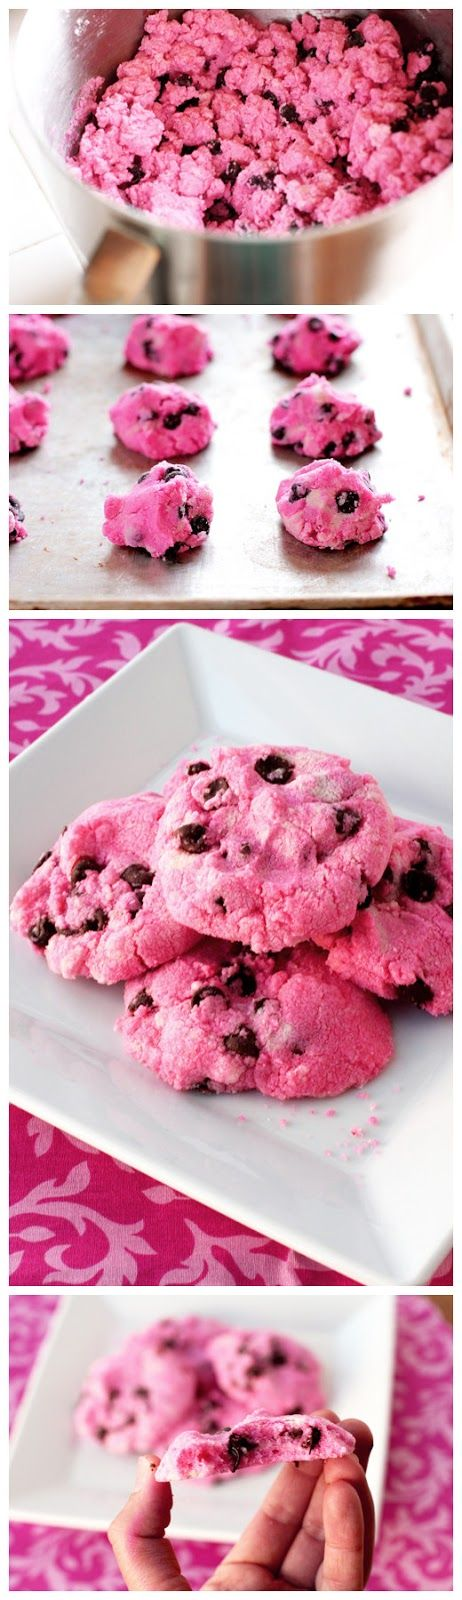 chips chips cookies chocolate pink kiss chocolate chip cookies chip ...